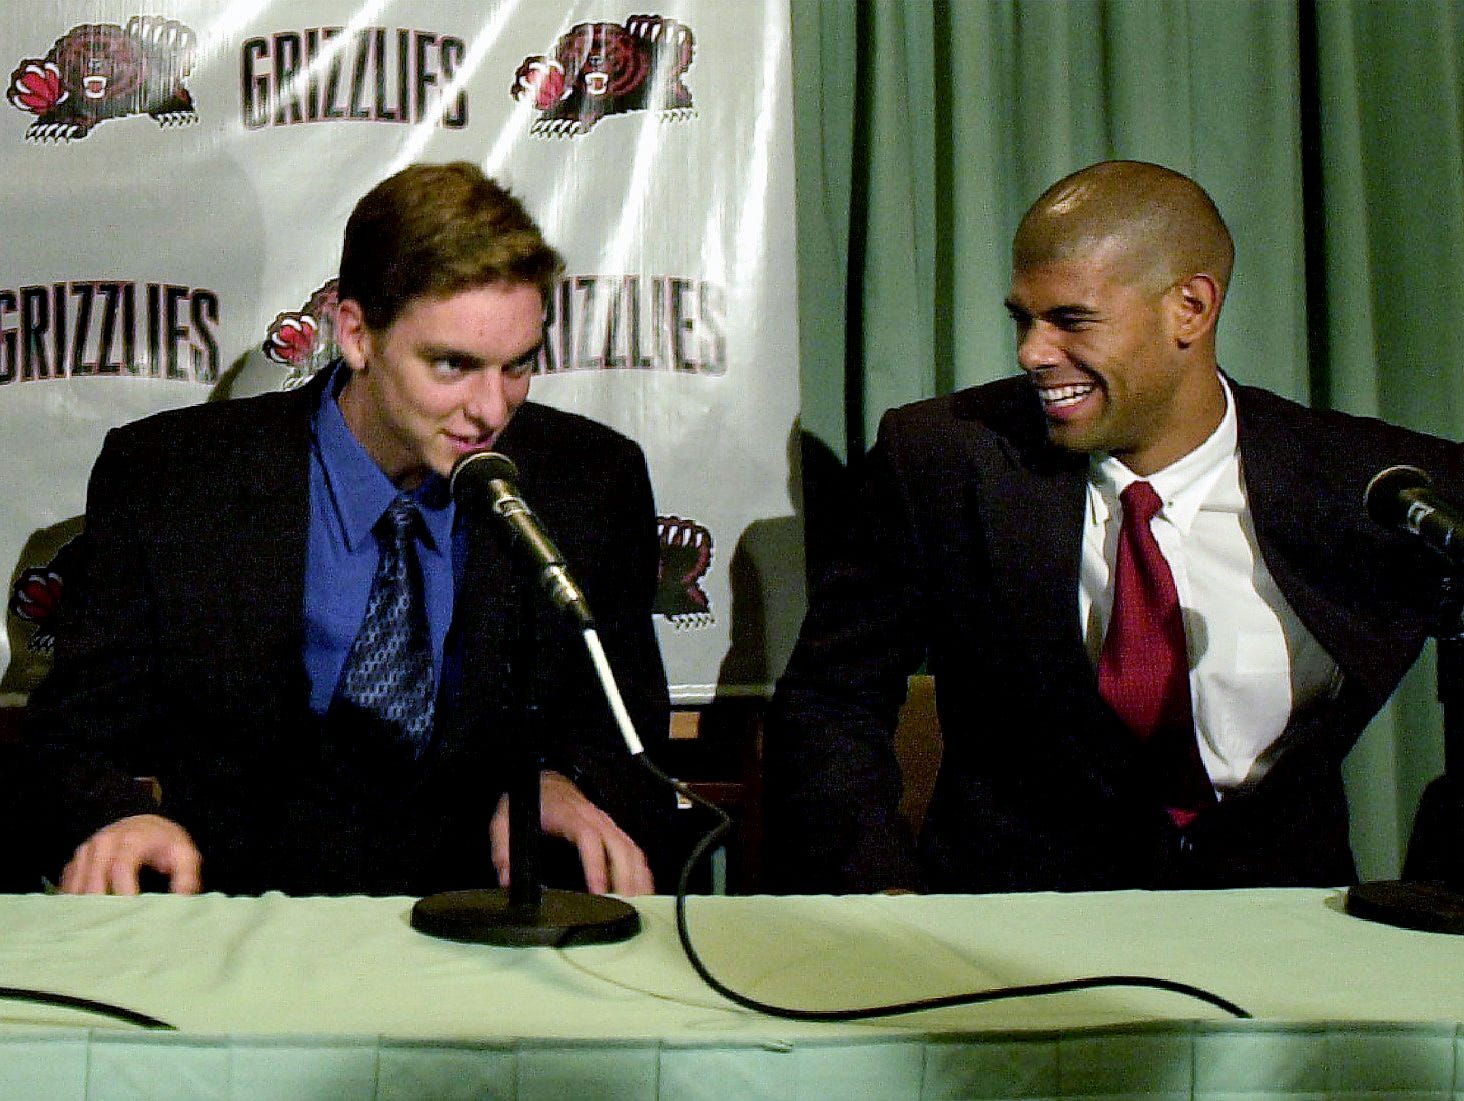 Memphis Grizzlies draft picks Pau Gasol, left, and Duke's Shane Battier are introduced to the press at the Peabody Hotel on June 27, 2001.